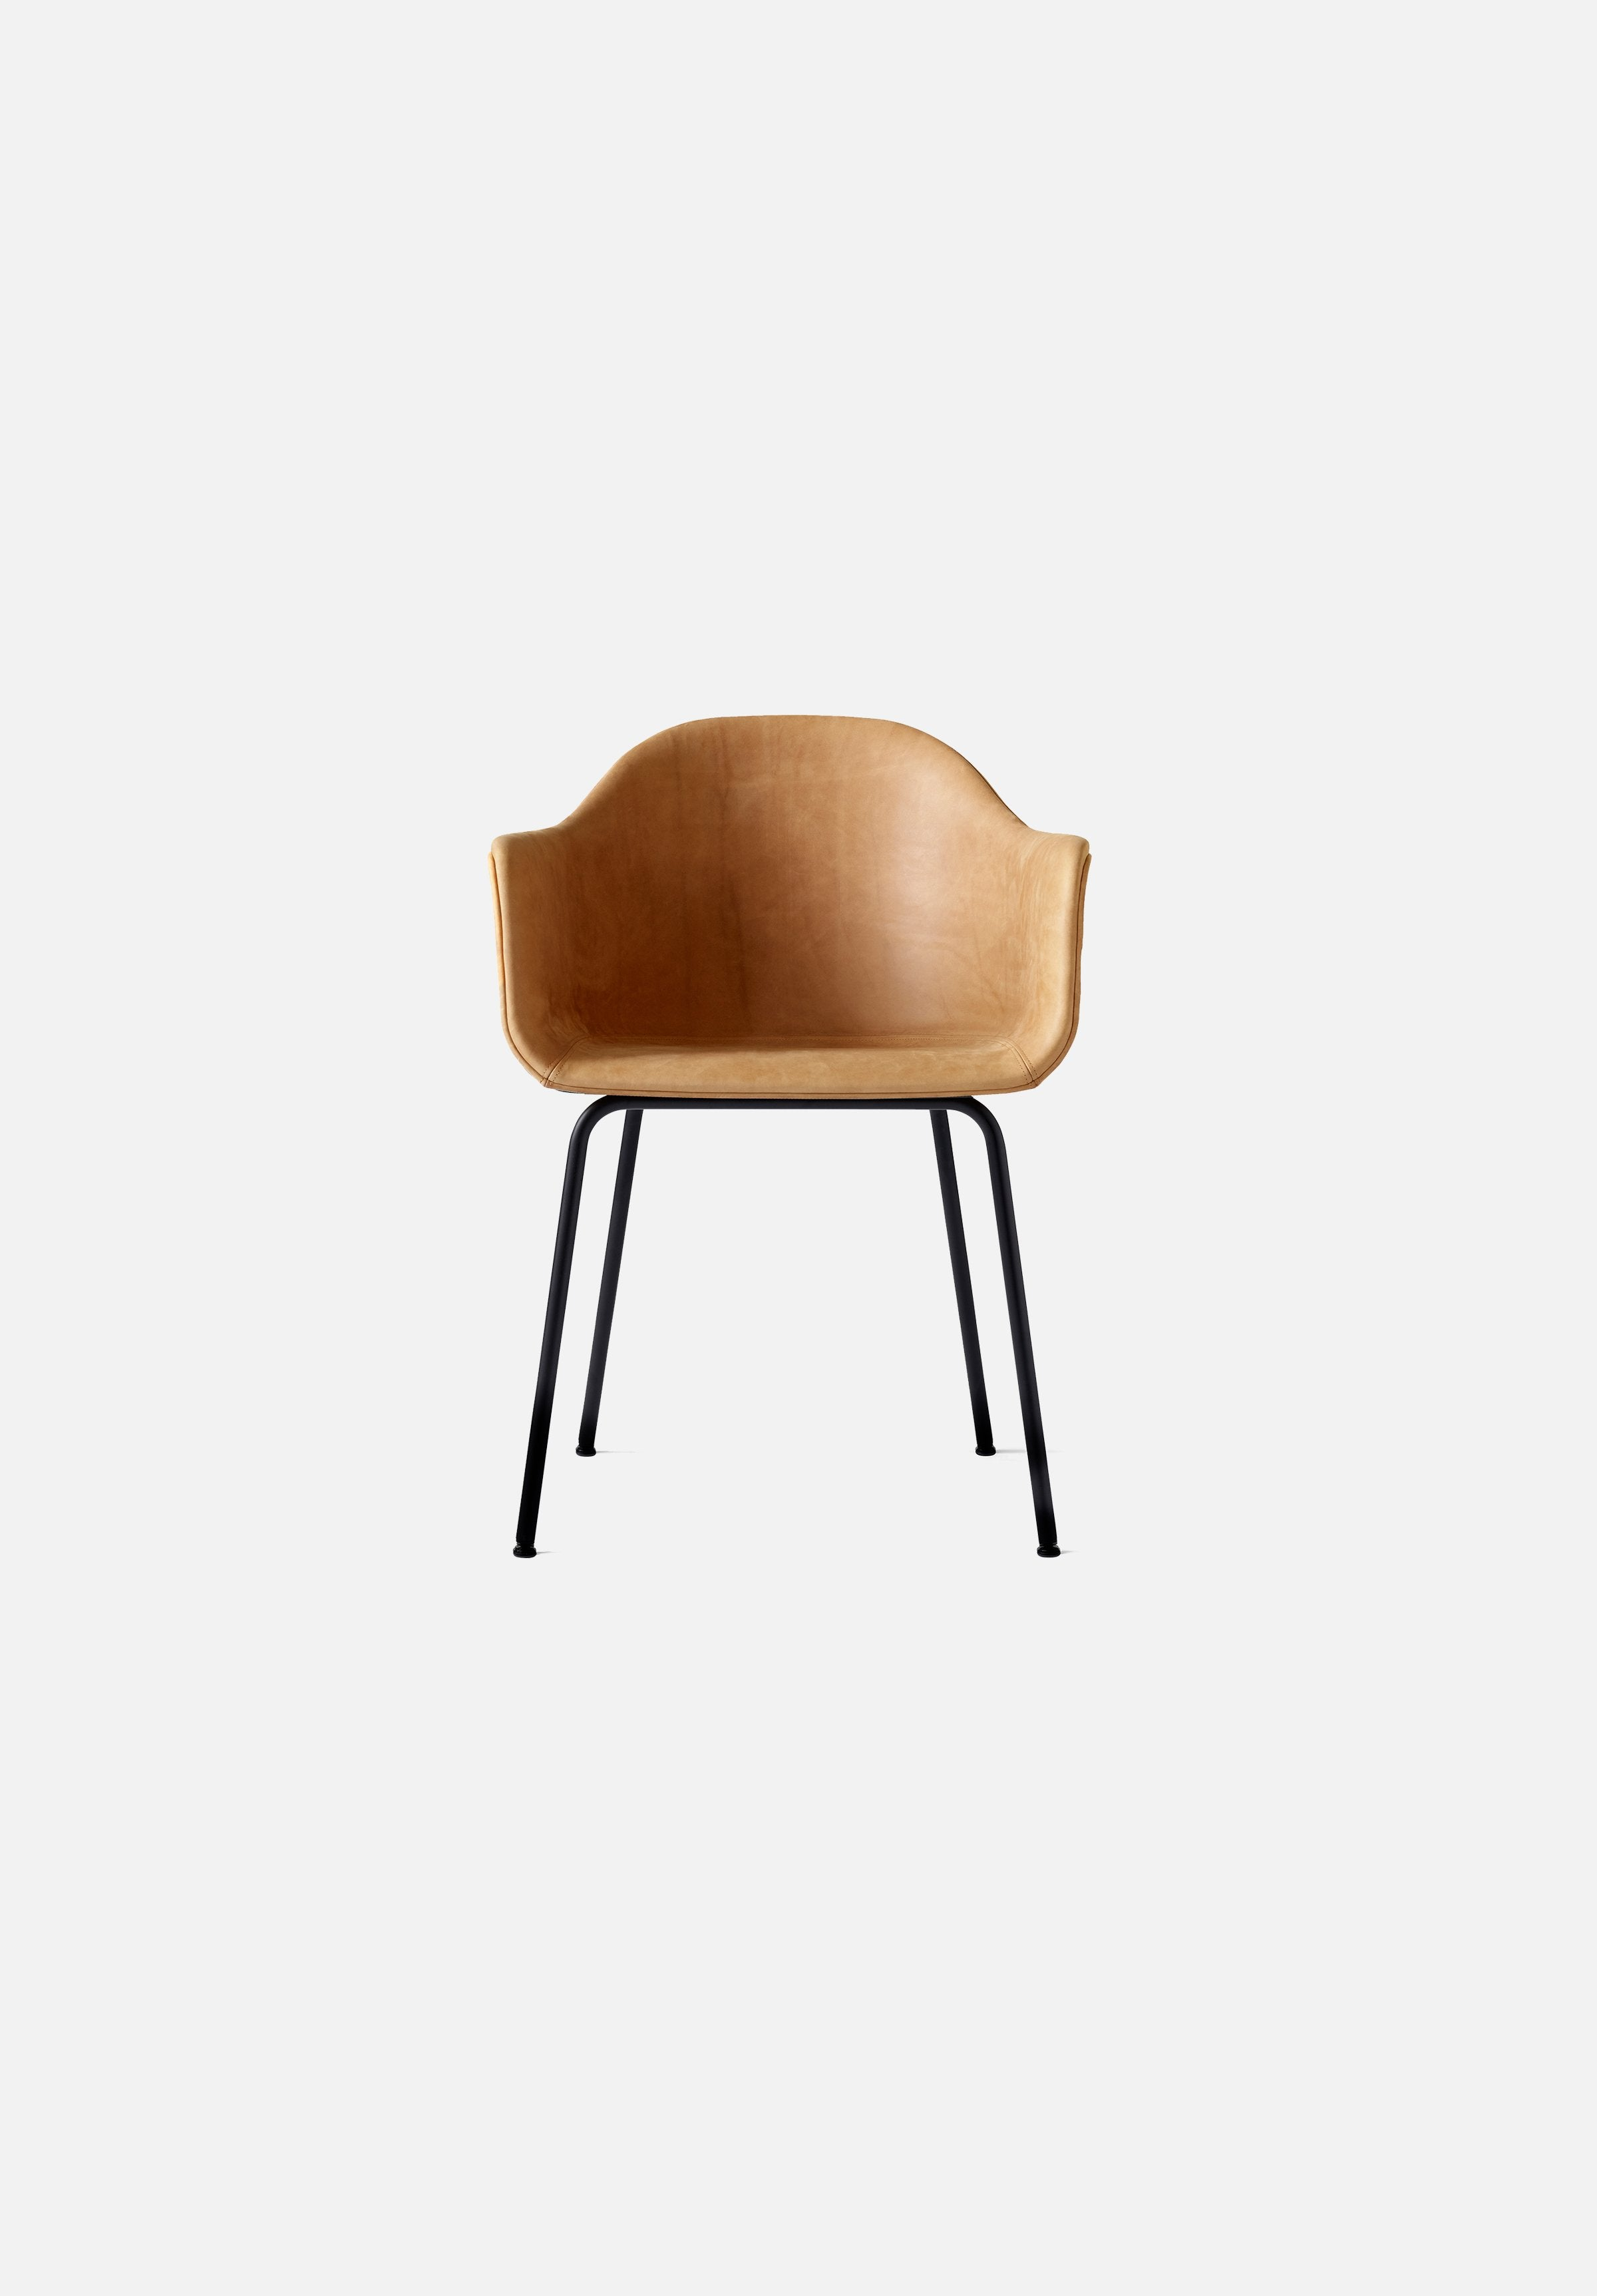 Harbour Chair - Steel Base-Norm Architects-Menu-cognac_leather-Black Steel-danish-interior-furniture-denmark-Average-design-toronto-canada